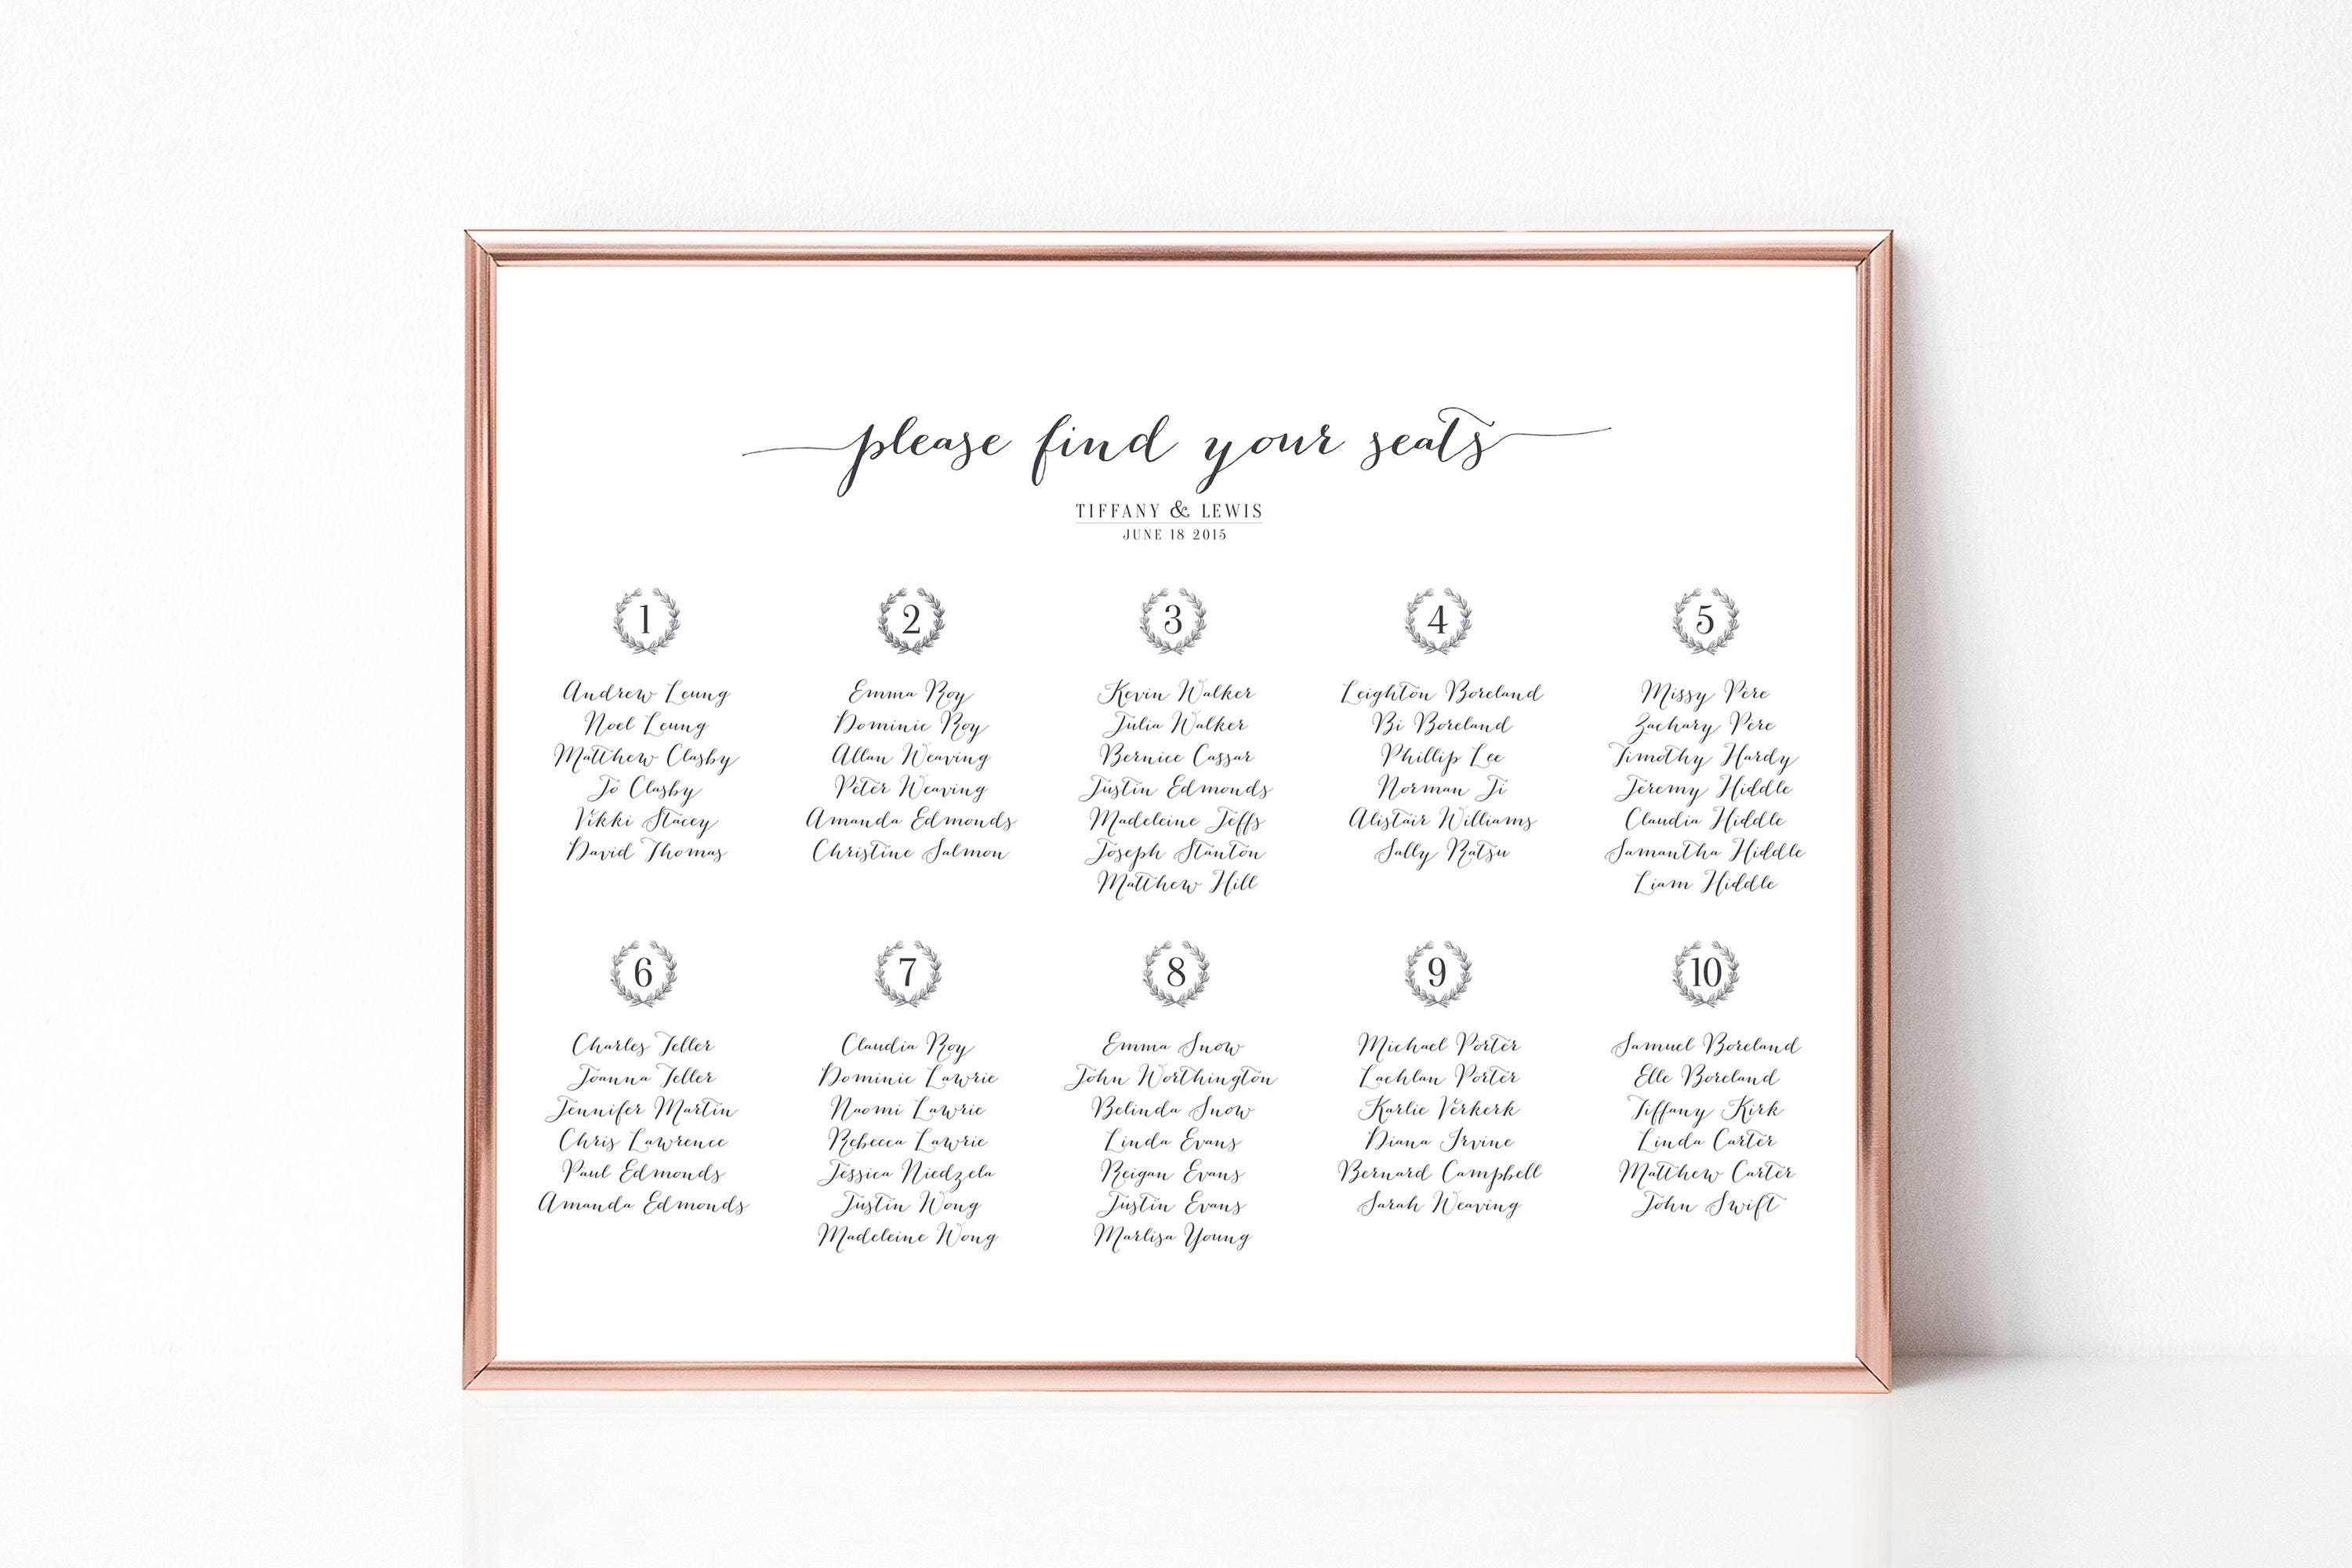 Printable Seating Chart Wreath Traditional Calligraphy Winter Seasonal Plan Arrangements Wedding Dinner